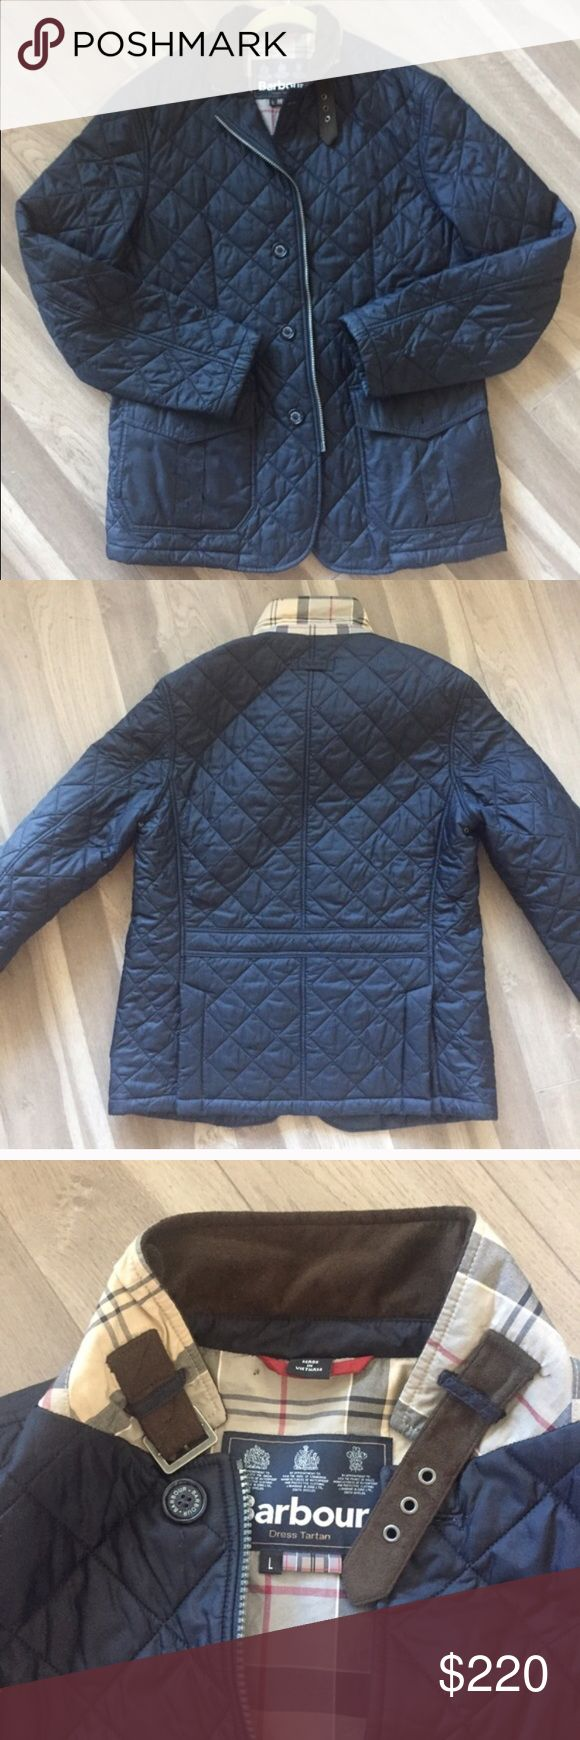 MEN'S BARBOUR QUILTED NAVY SANDER SPORT JACKET LIKE NEW. AUTHENTIC. Worn once! Warm up on chilly days with this quilted men's. Barbour NAVY BLUE sports jacket. This midweight jacket features a zipped center front, box pleat hip pockets with side entry, and an action back for freedom of movement. Classic Barbour Dress Tartan lining. Alcantara throat adjuster and collar lining. In navy. 100% polymide. Washable. Imported. BUY NOW OR MAKE AN OFFER !! Barbour Jackets & Coats